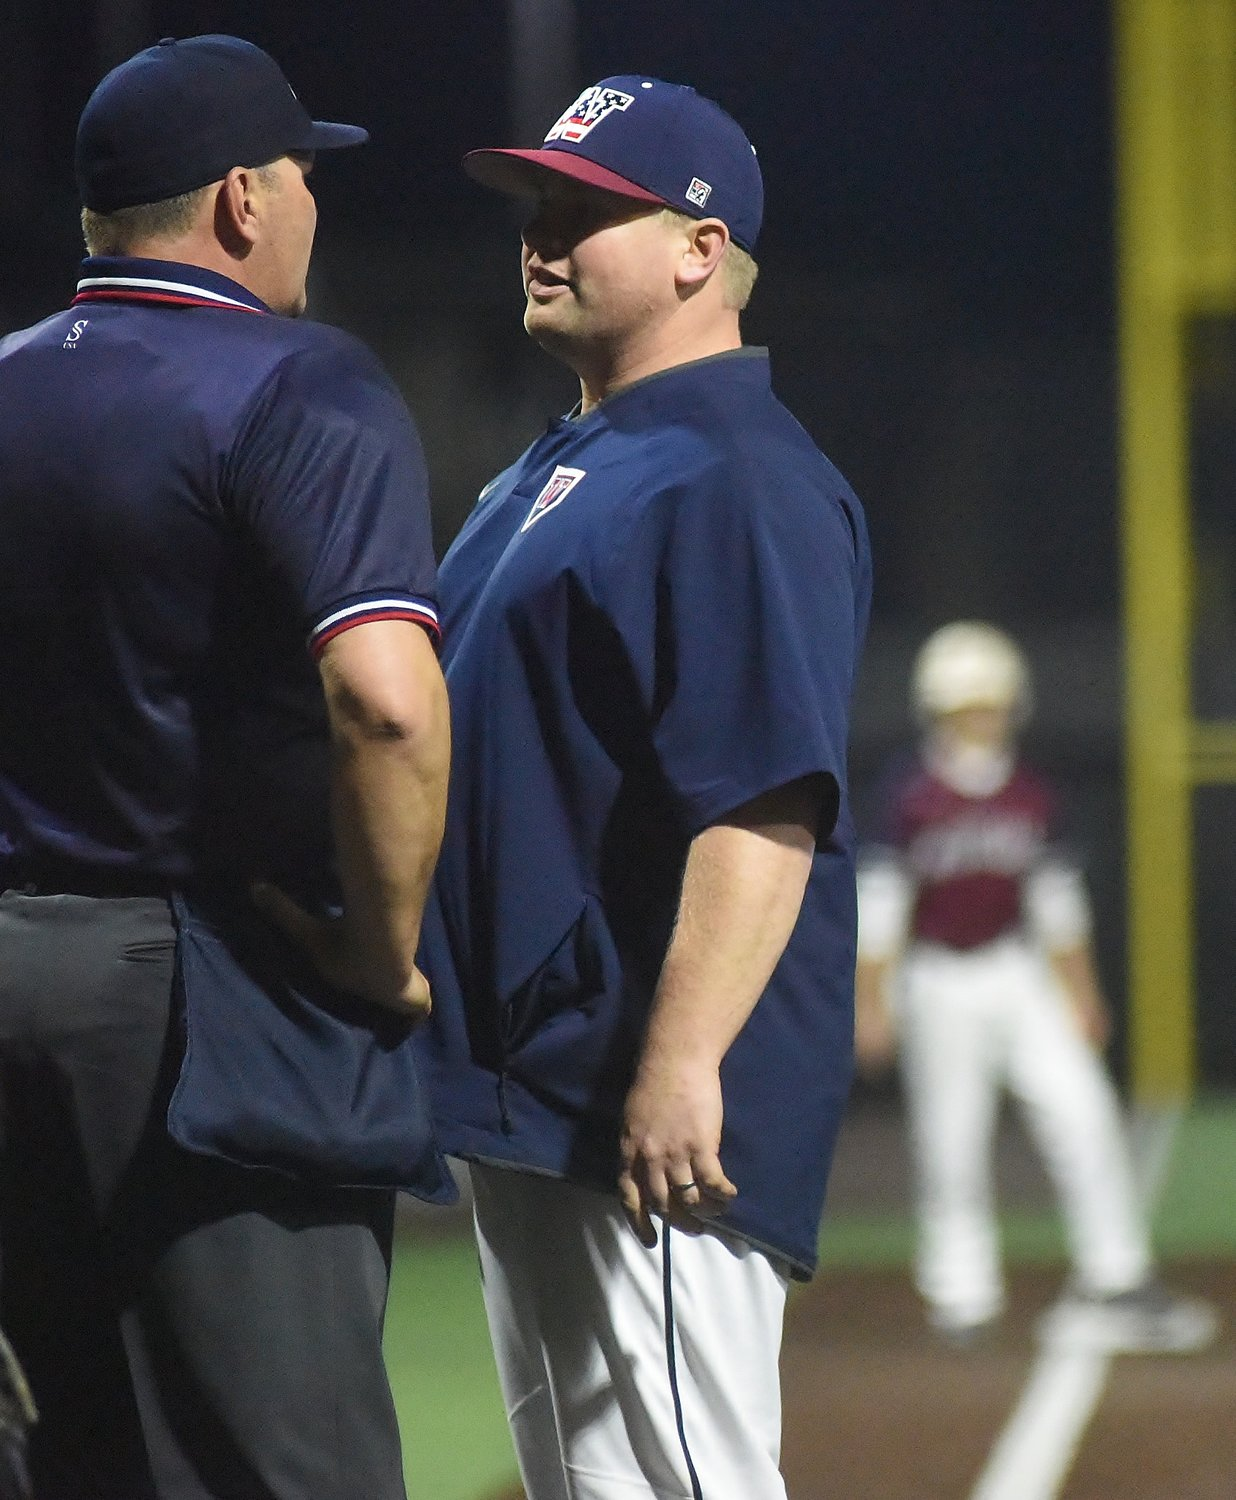 Matt Montgomery, right, speaks with an umpire during a Woodland High baseball game March 1 at LakePoint. Montgomery served as the Wildcats' interim head coach for a majority of the season before recently taking over the program on a permanent basis.